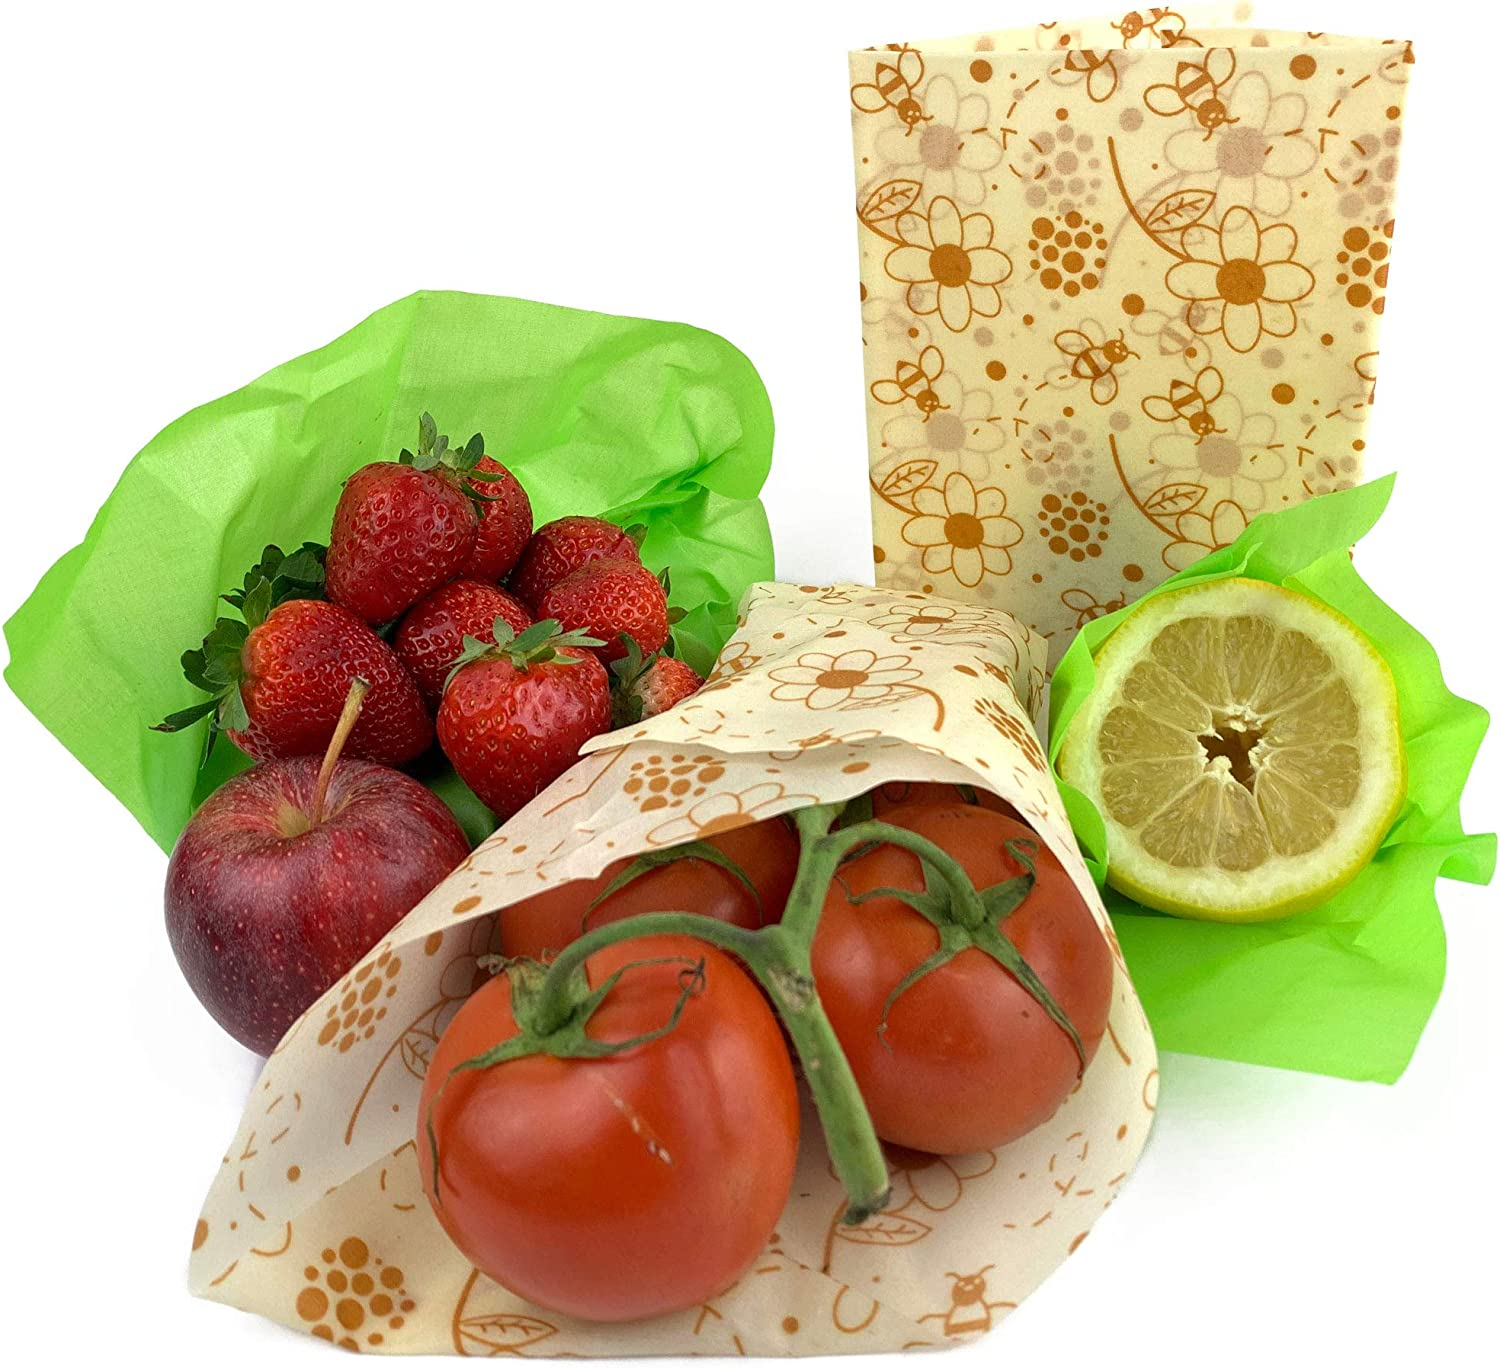 Beeswax Reusable Food Wraps. Sandwich Wrappers and Bowl Covers. Plastic-Free Food Storage Alternative. 4 Pack. Also includes 2 stainless steel straws.